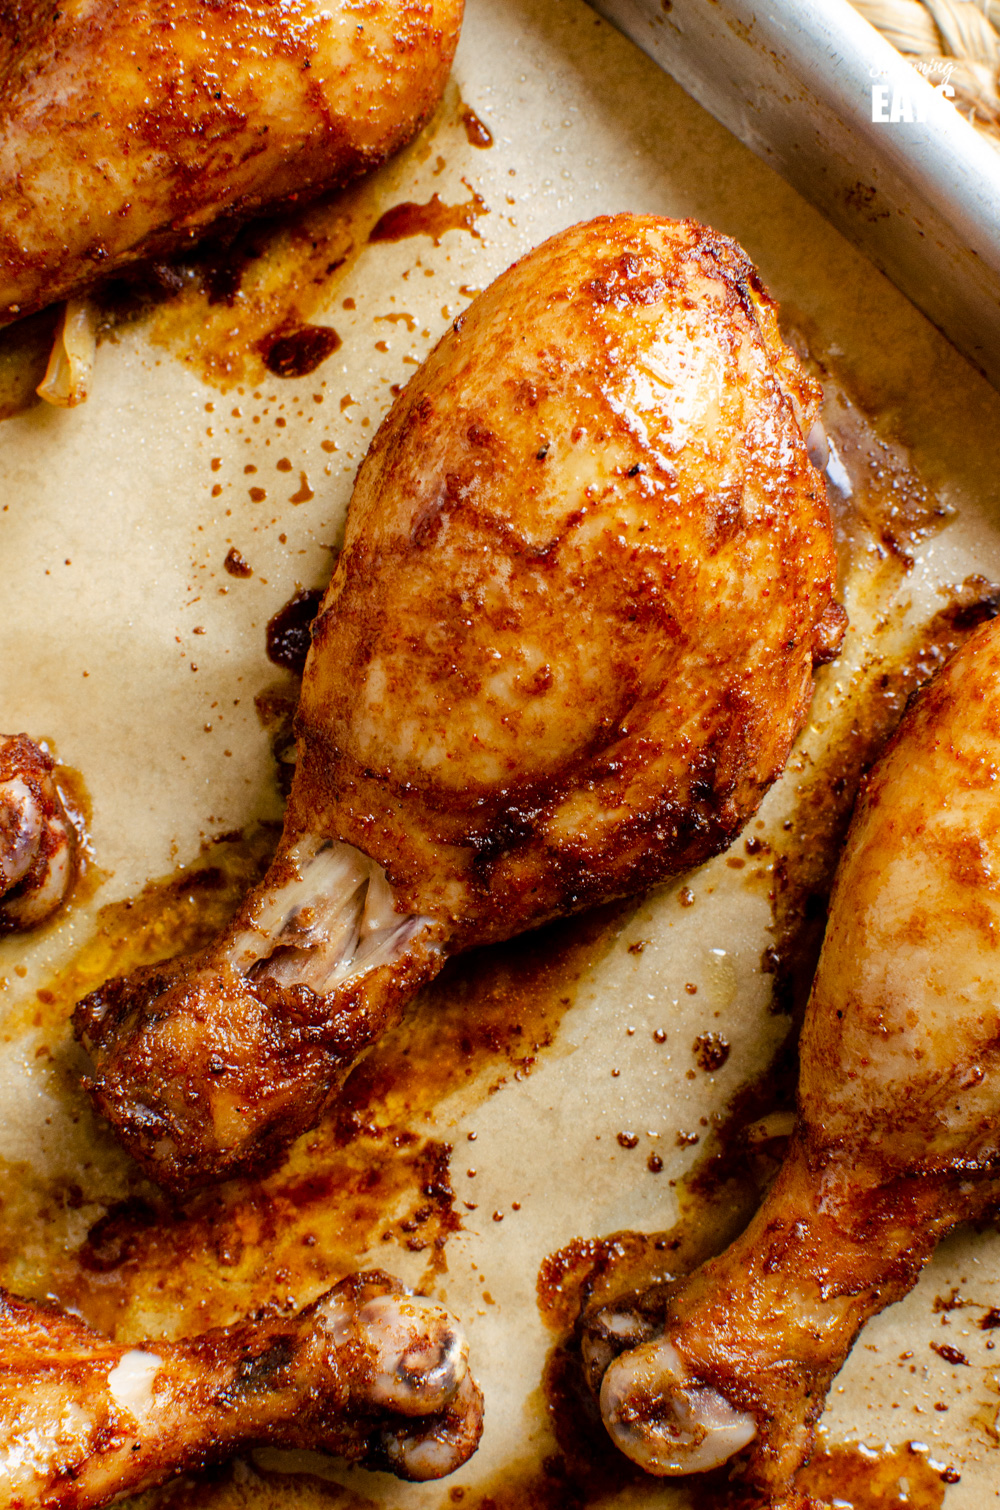 baked marinaded chicken drumsticks on a baking tray